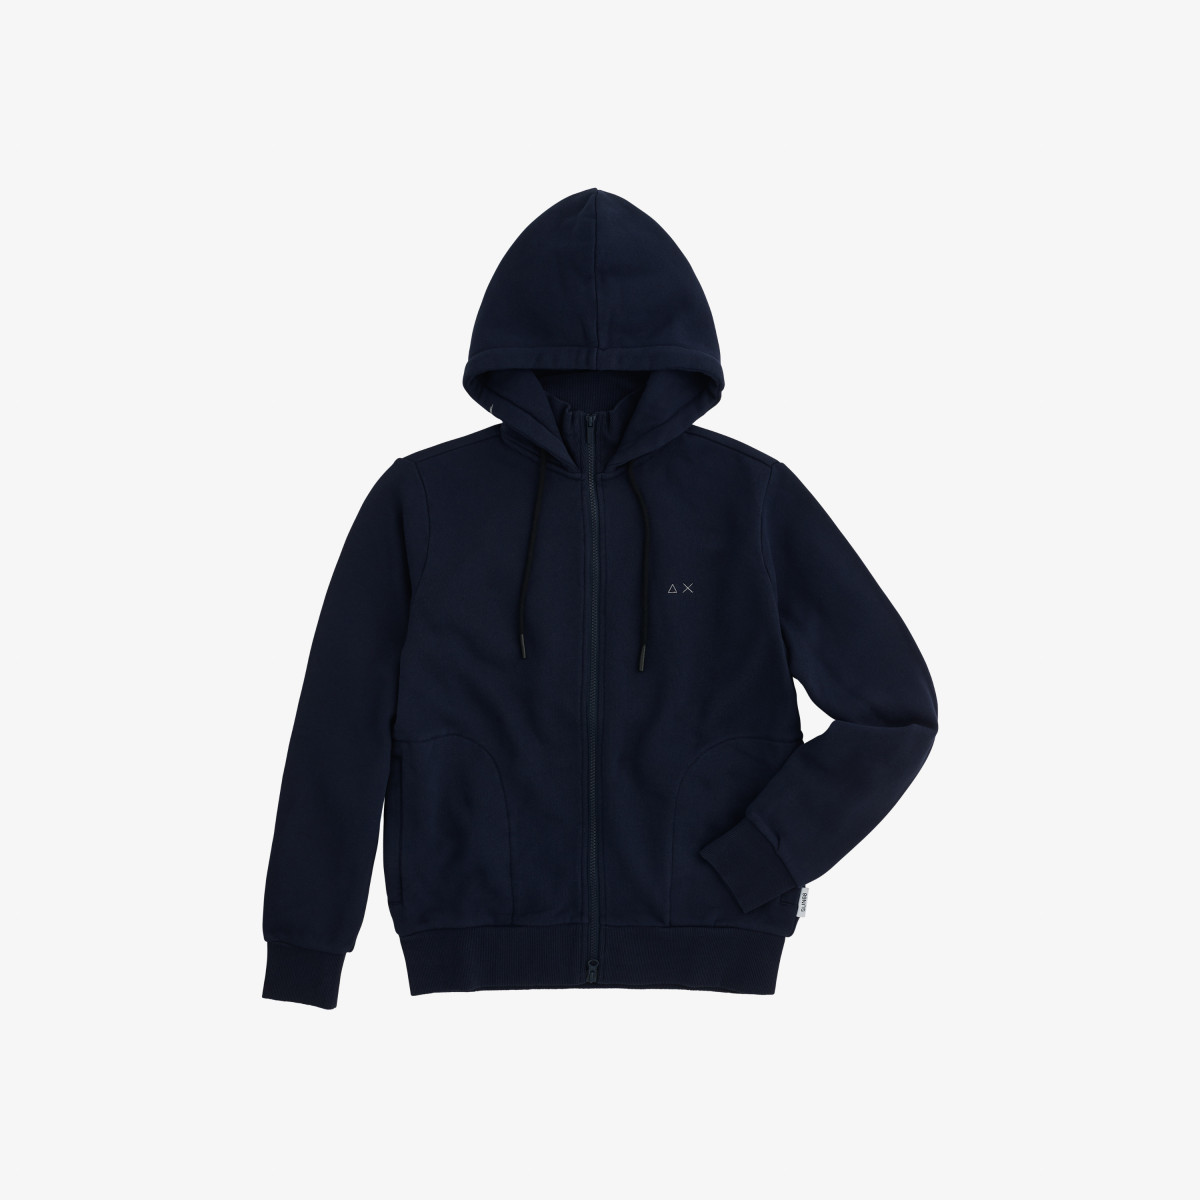 HOOD FULL ZIP COTTON FL NAVY BLUE